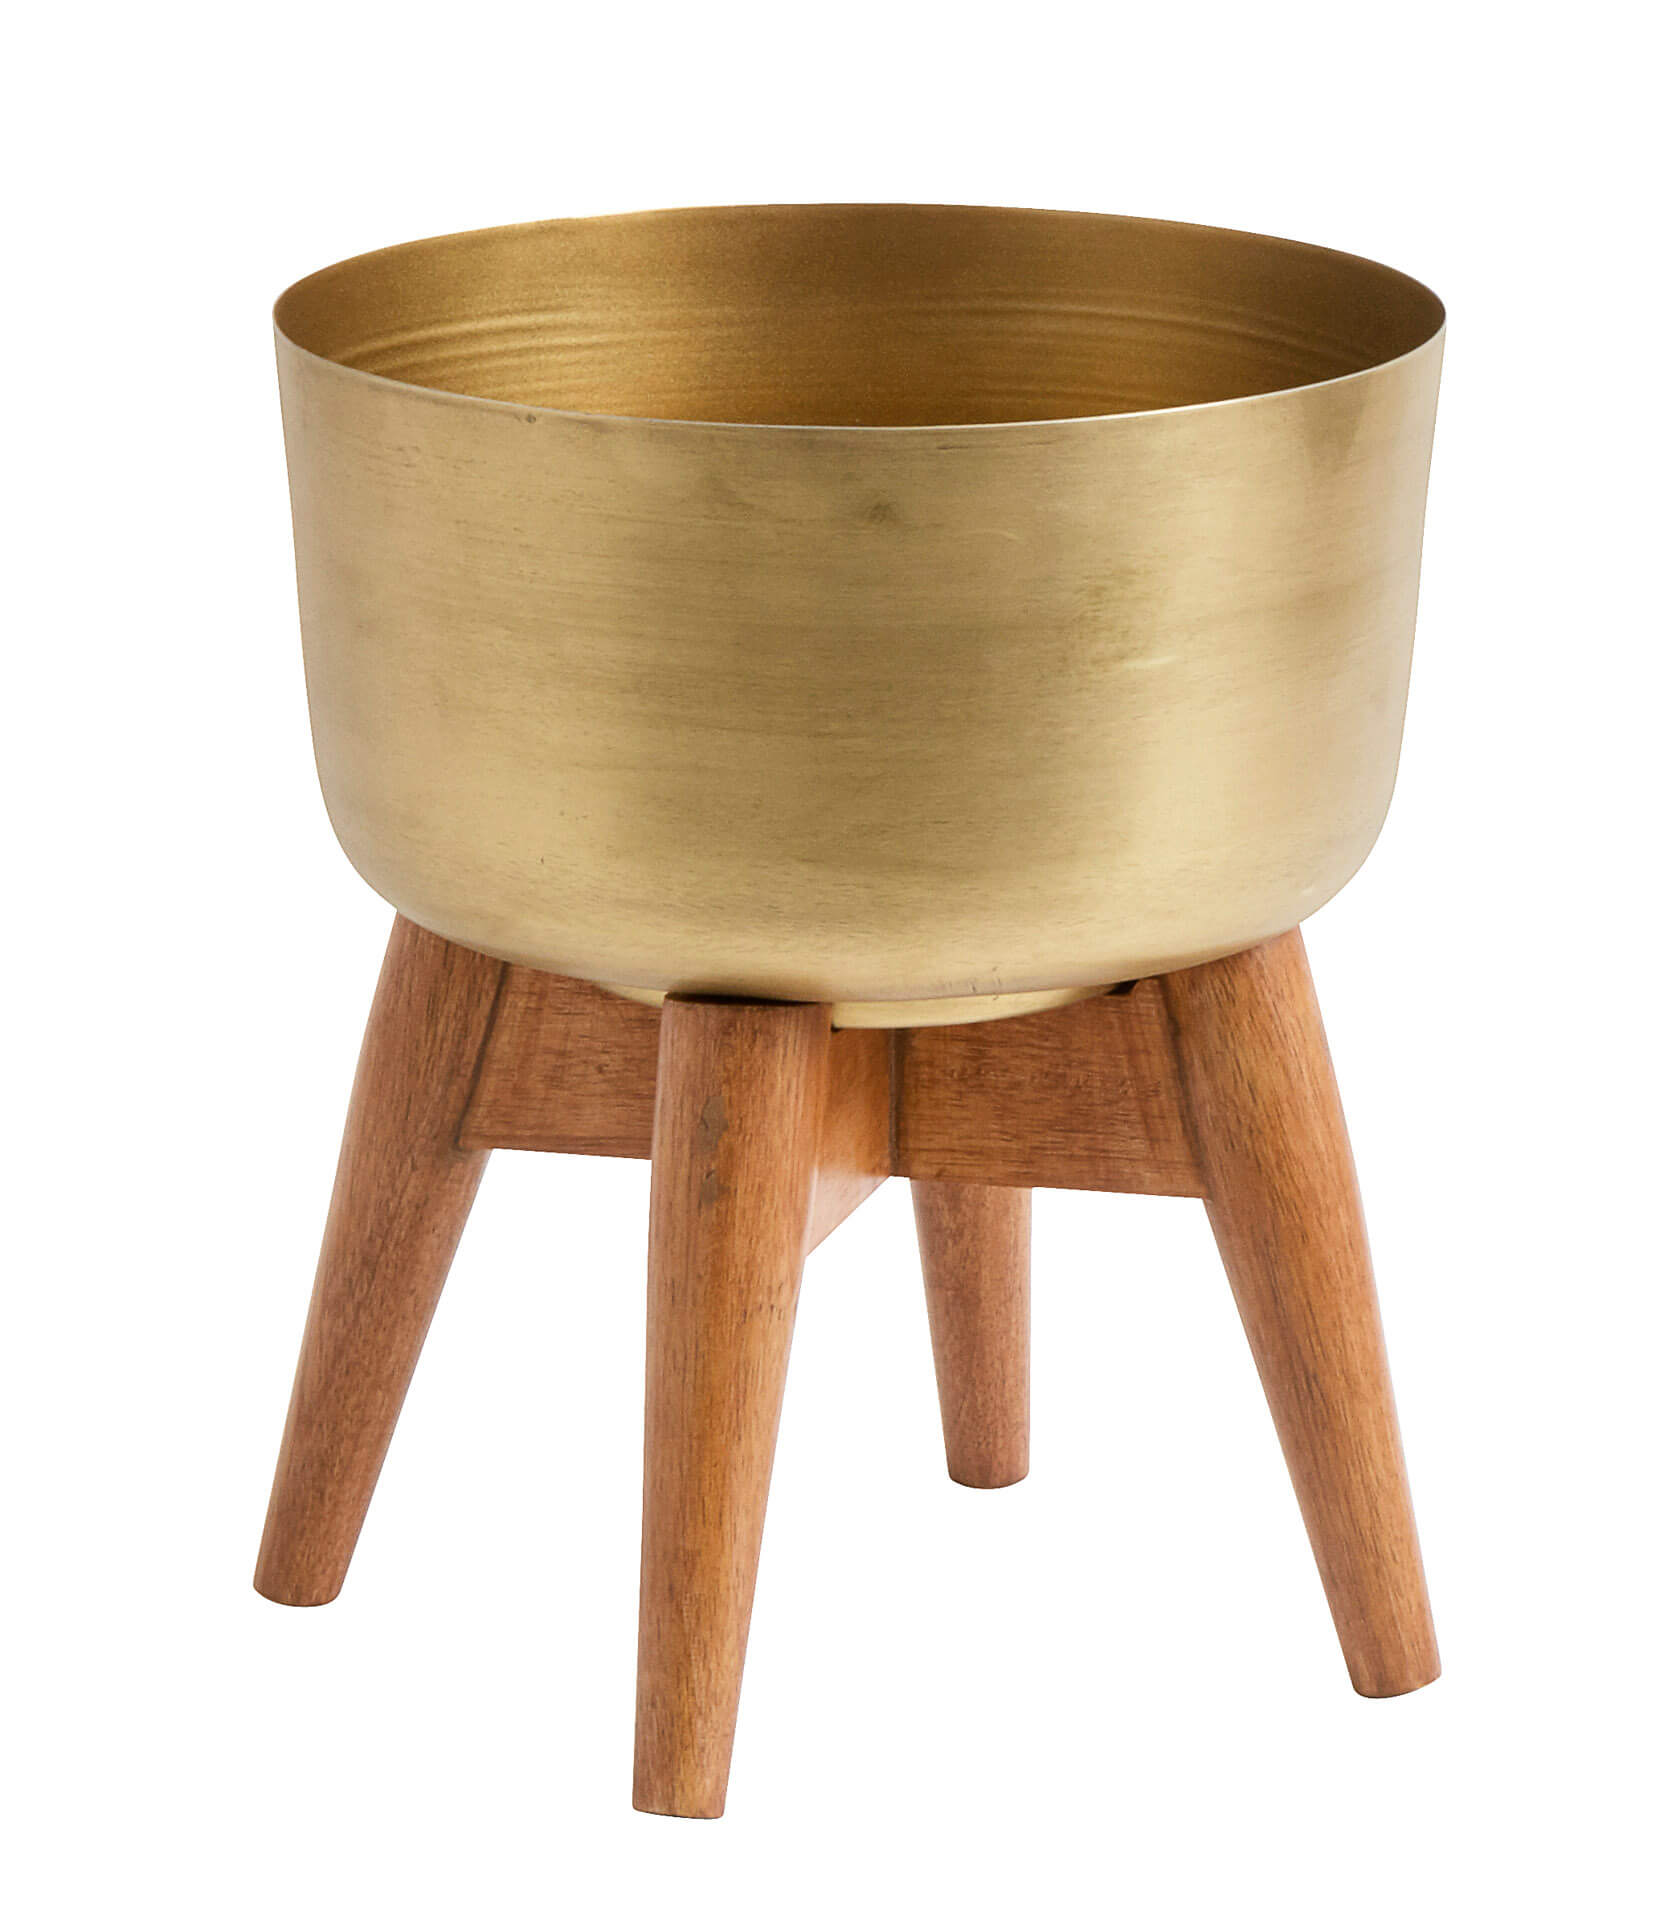 Nordal Planter On Stand Small Brass/Wood